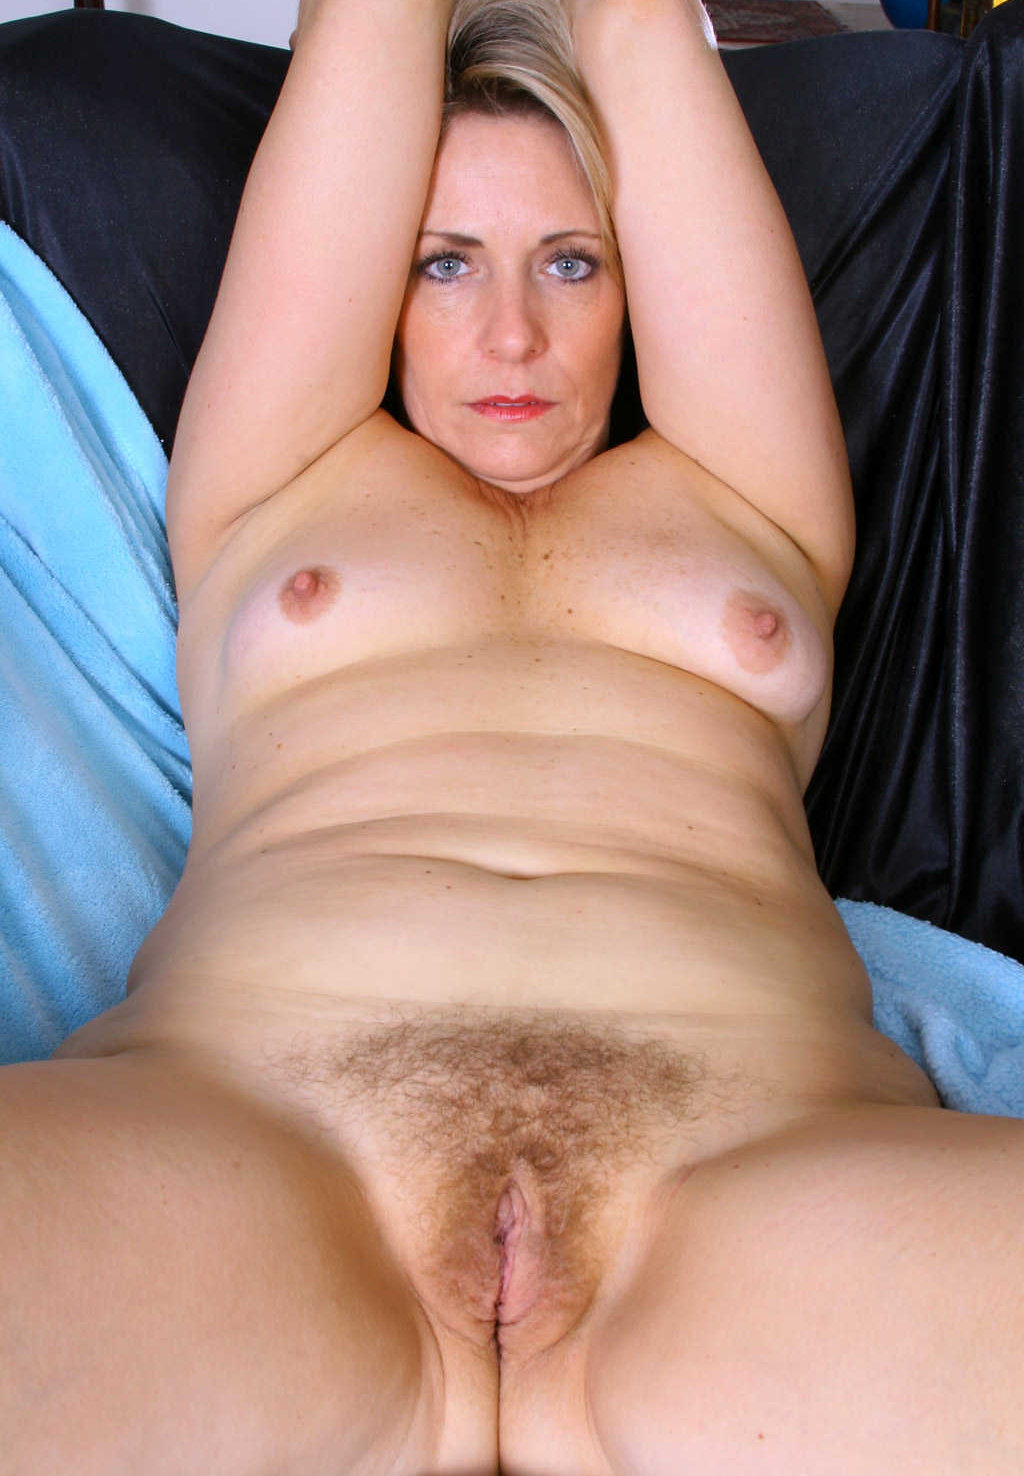 Small titted amateur french blonde hard pounded n facialized 9